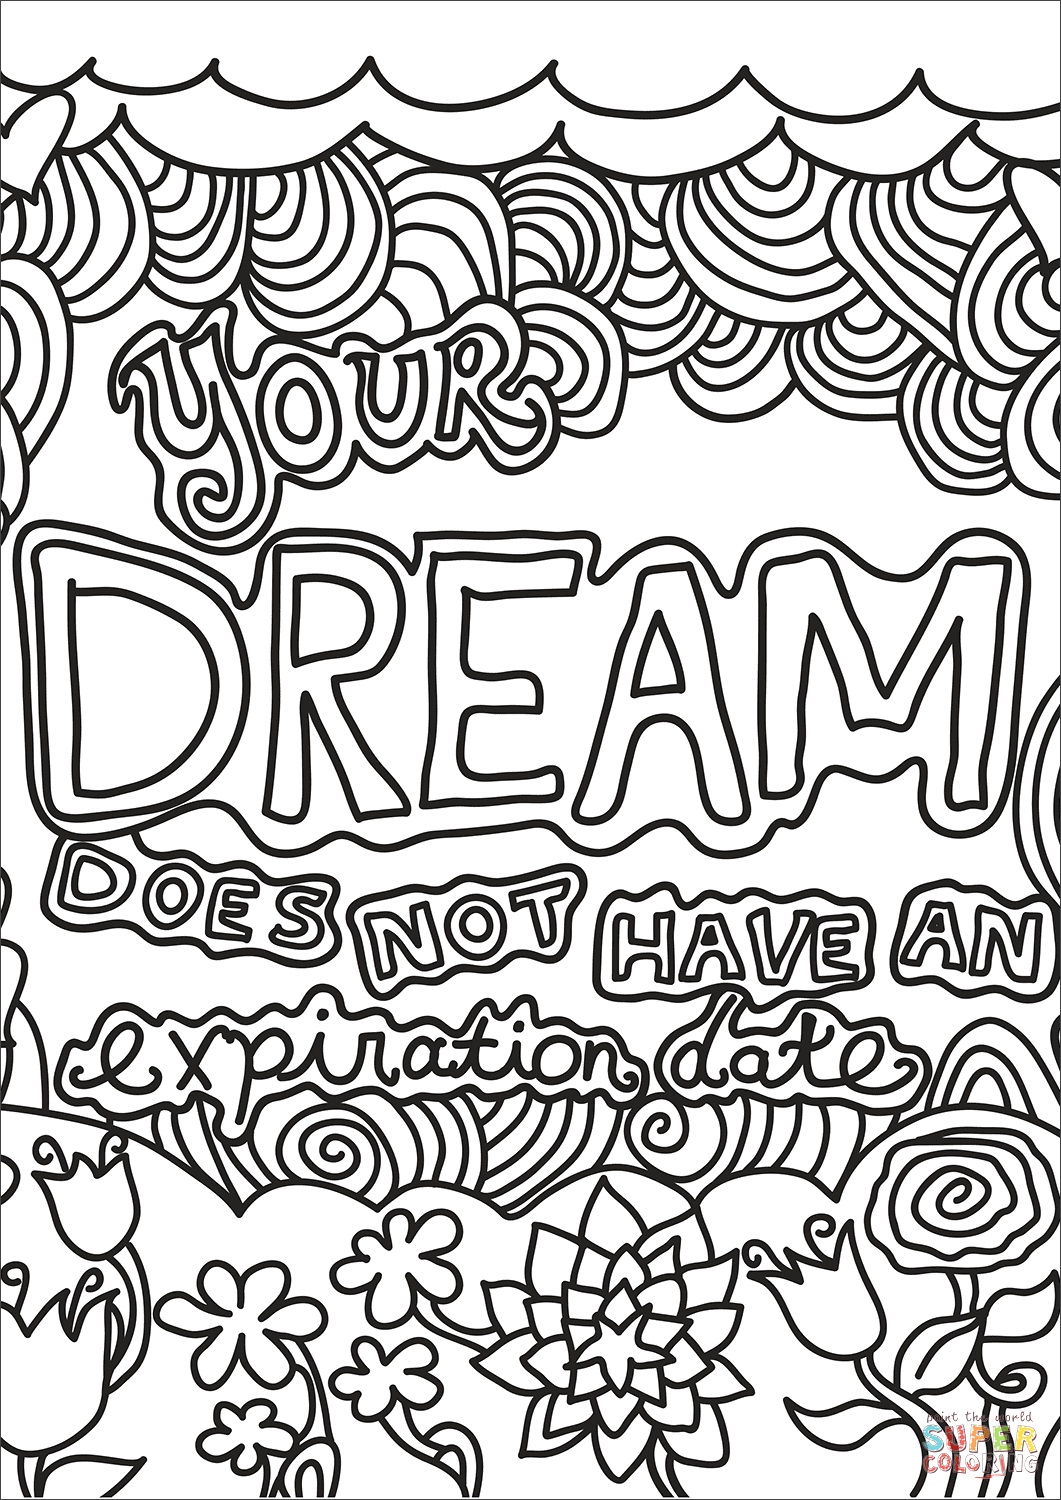 your dream does not have an expiration date